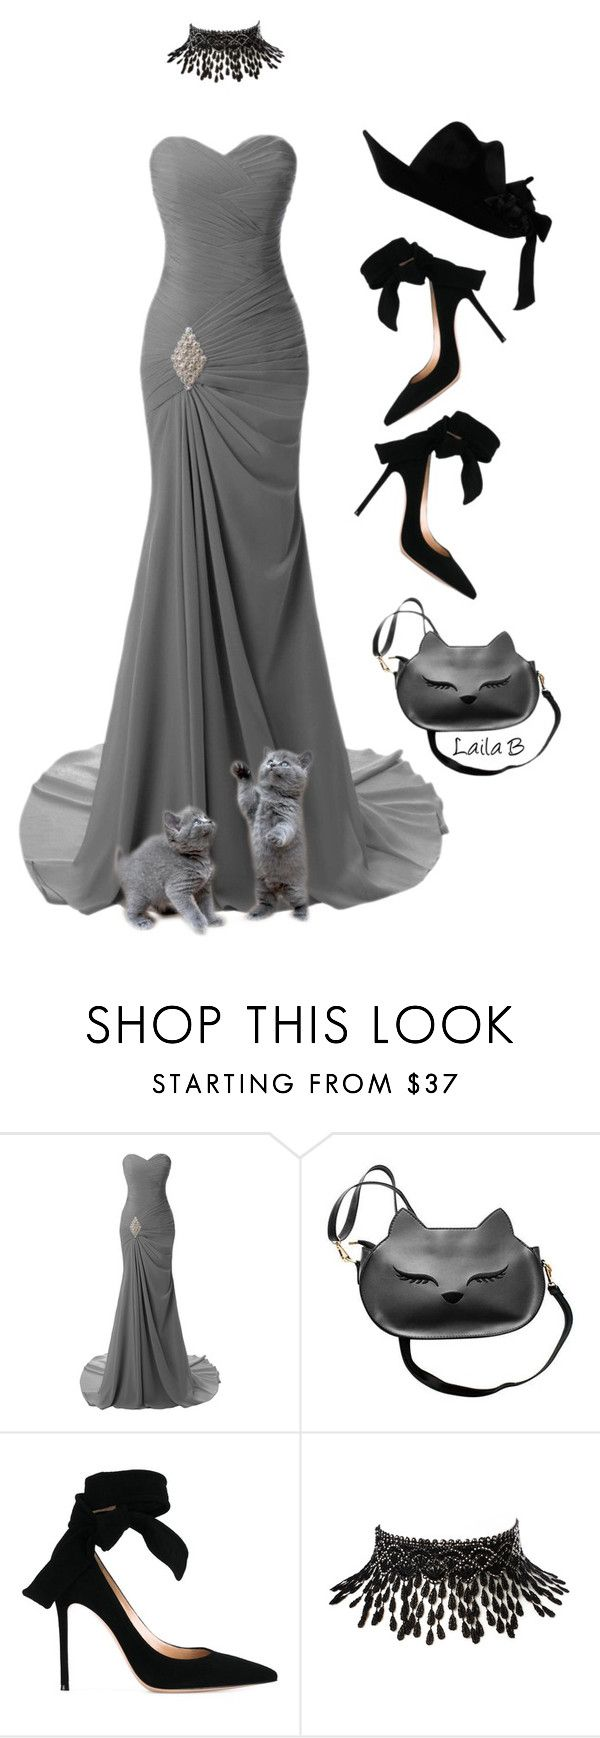 """Grey Mermaid Gown"" by laila-bergan ❤ liked on Polyvore featuring Gianvito Rossi, Amrita Singh and Gucci"